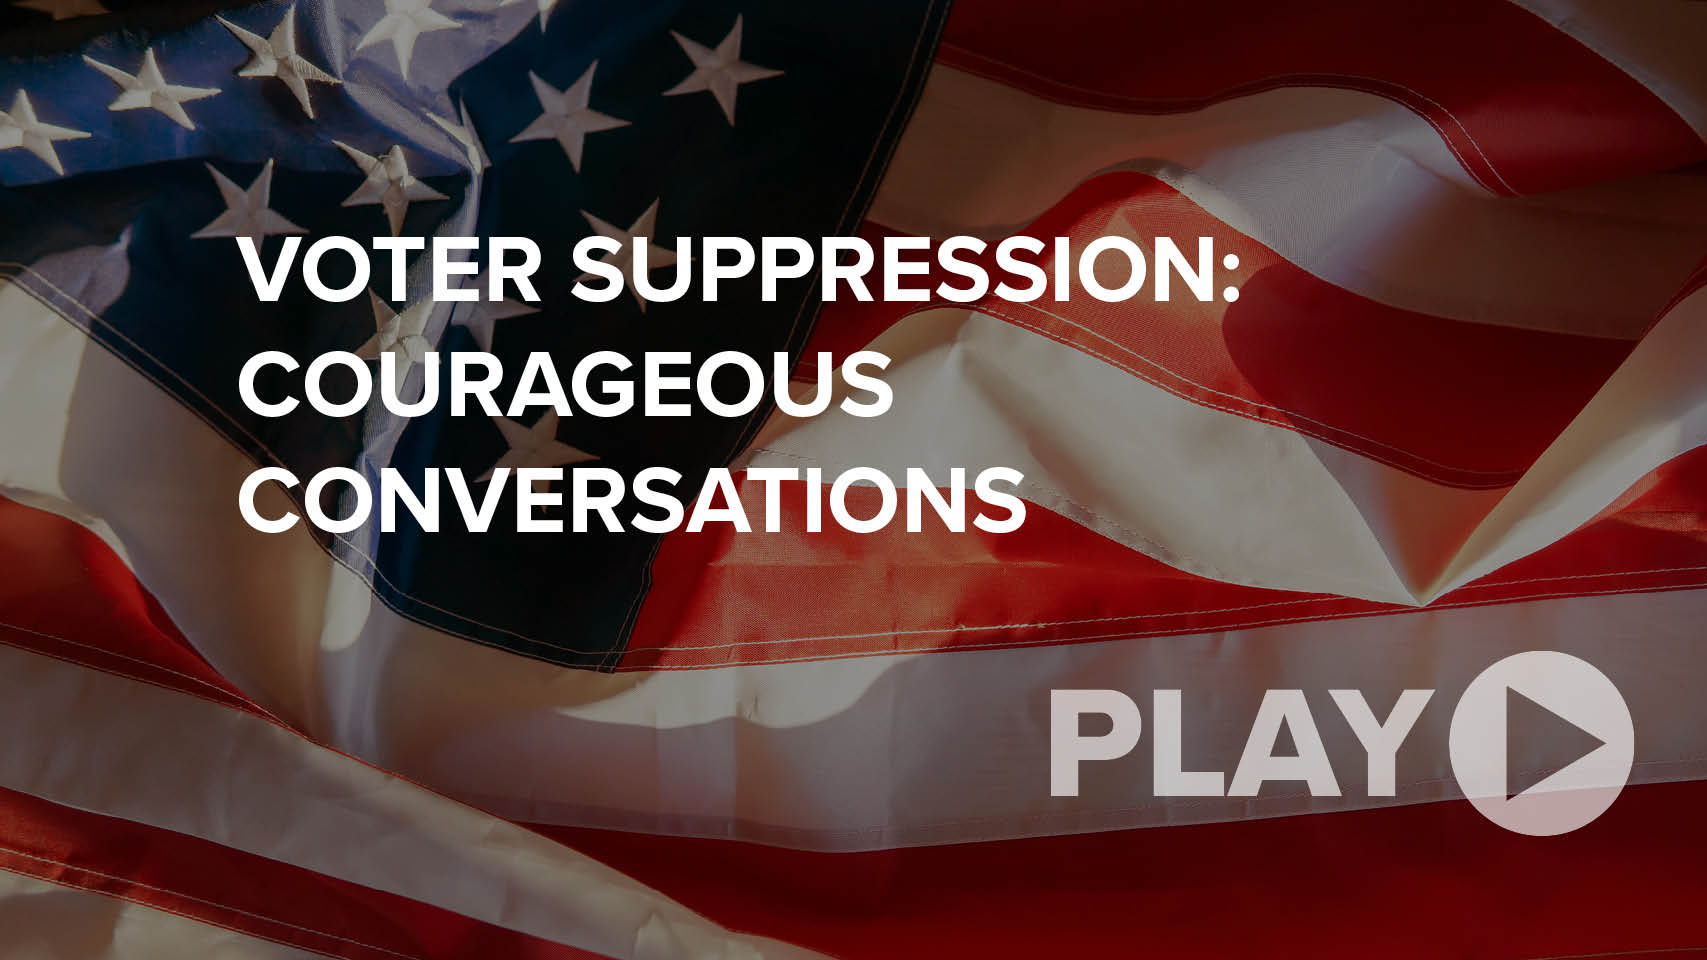 Voter Suppression: Courageous Conversations